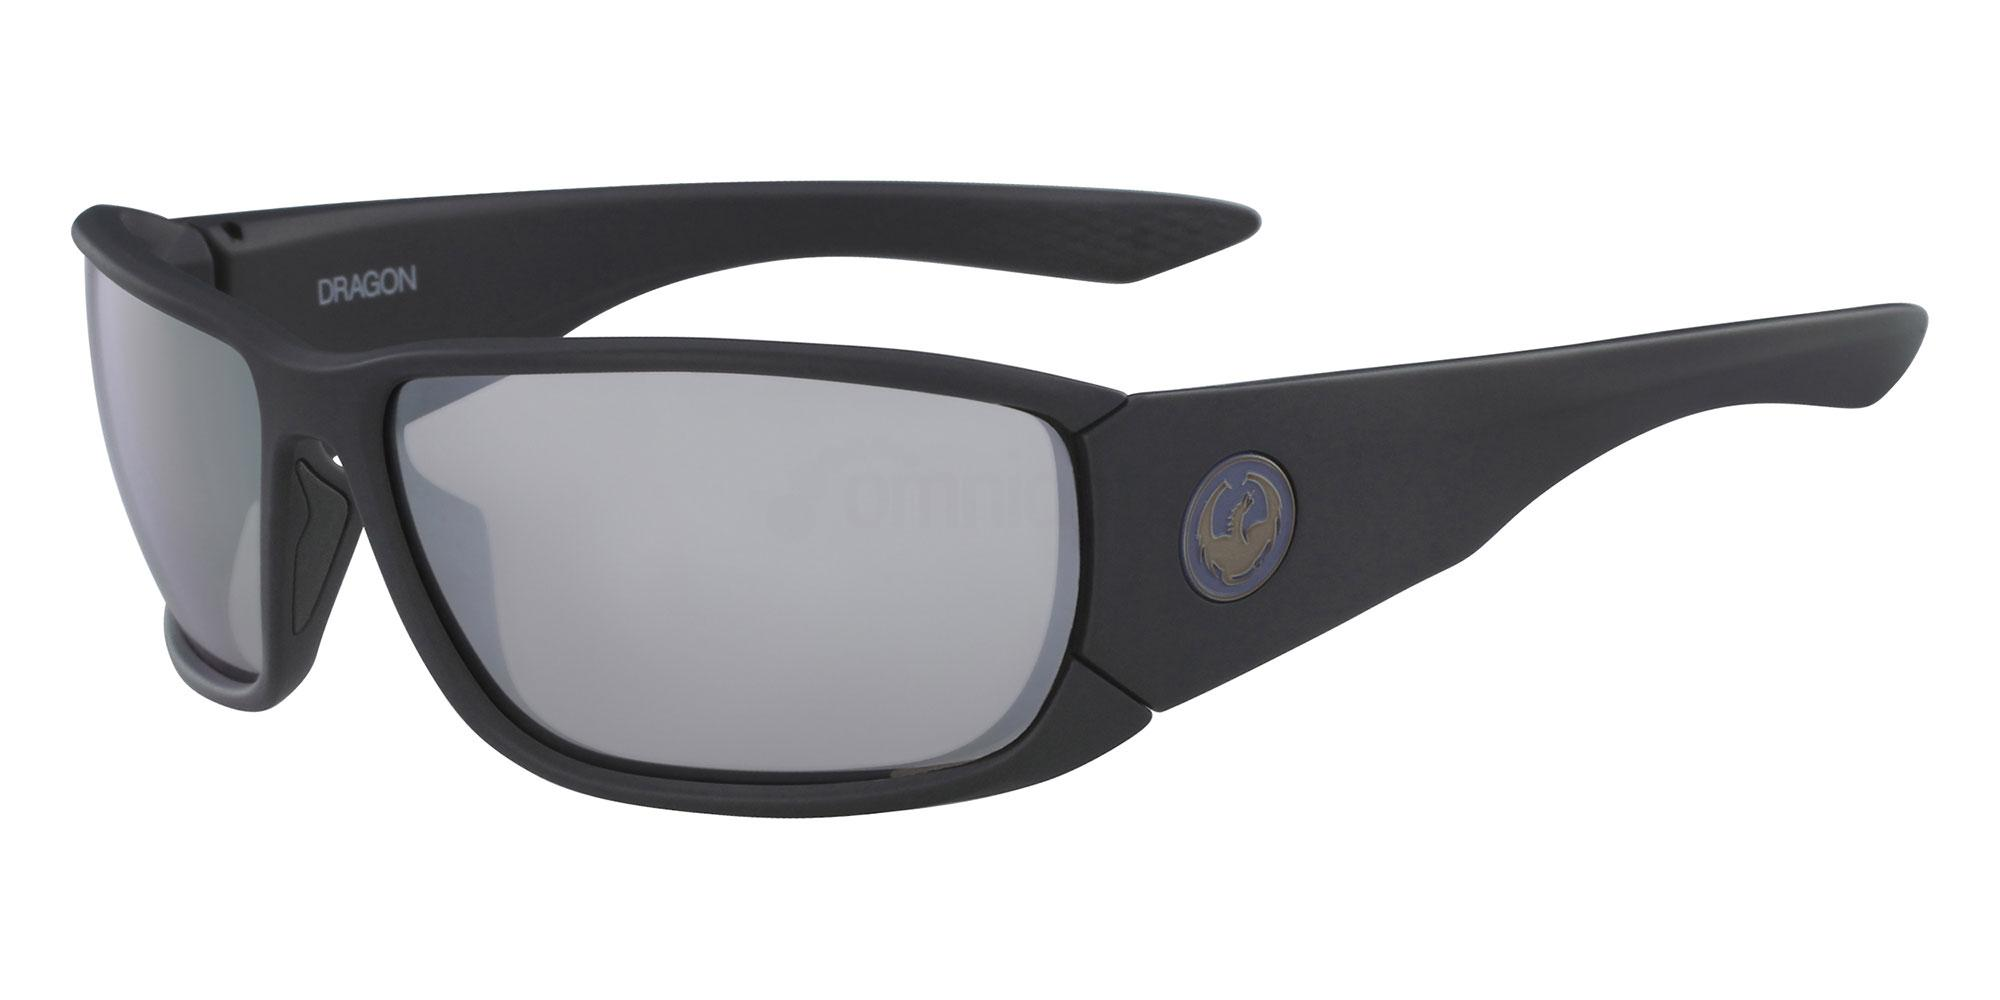 036 DR TOW IN ION Sunglasses, Dragon